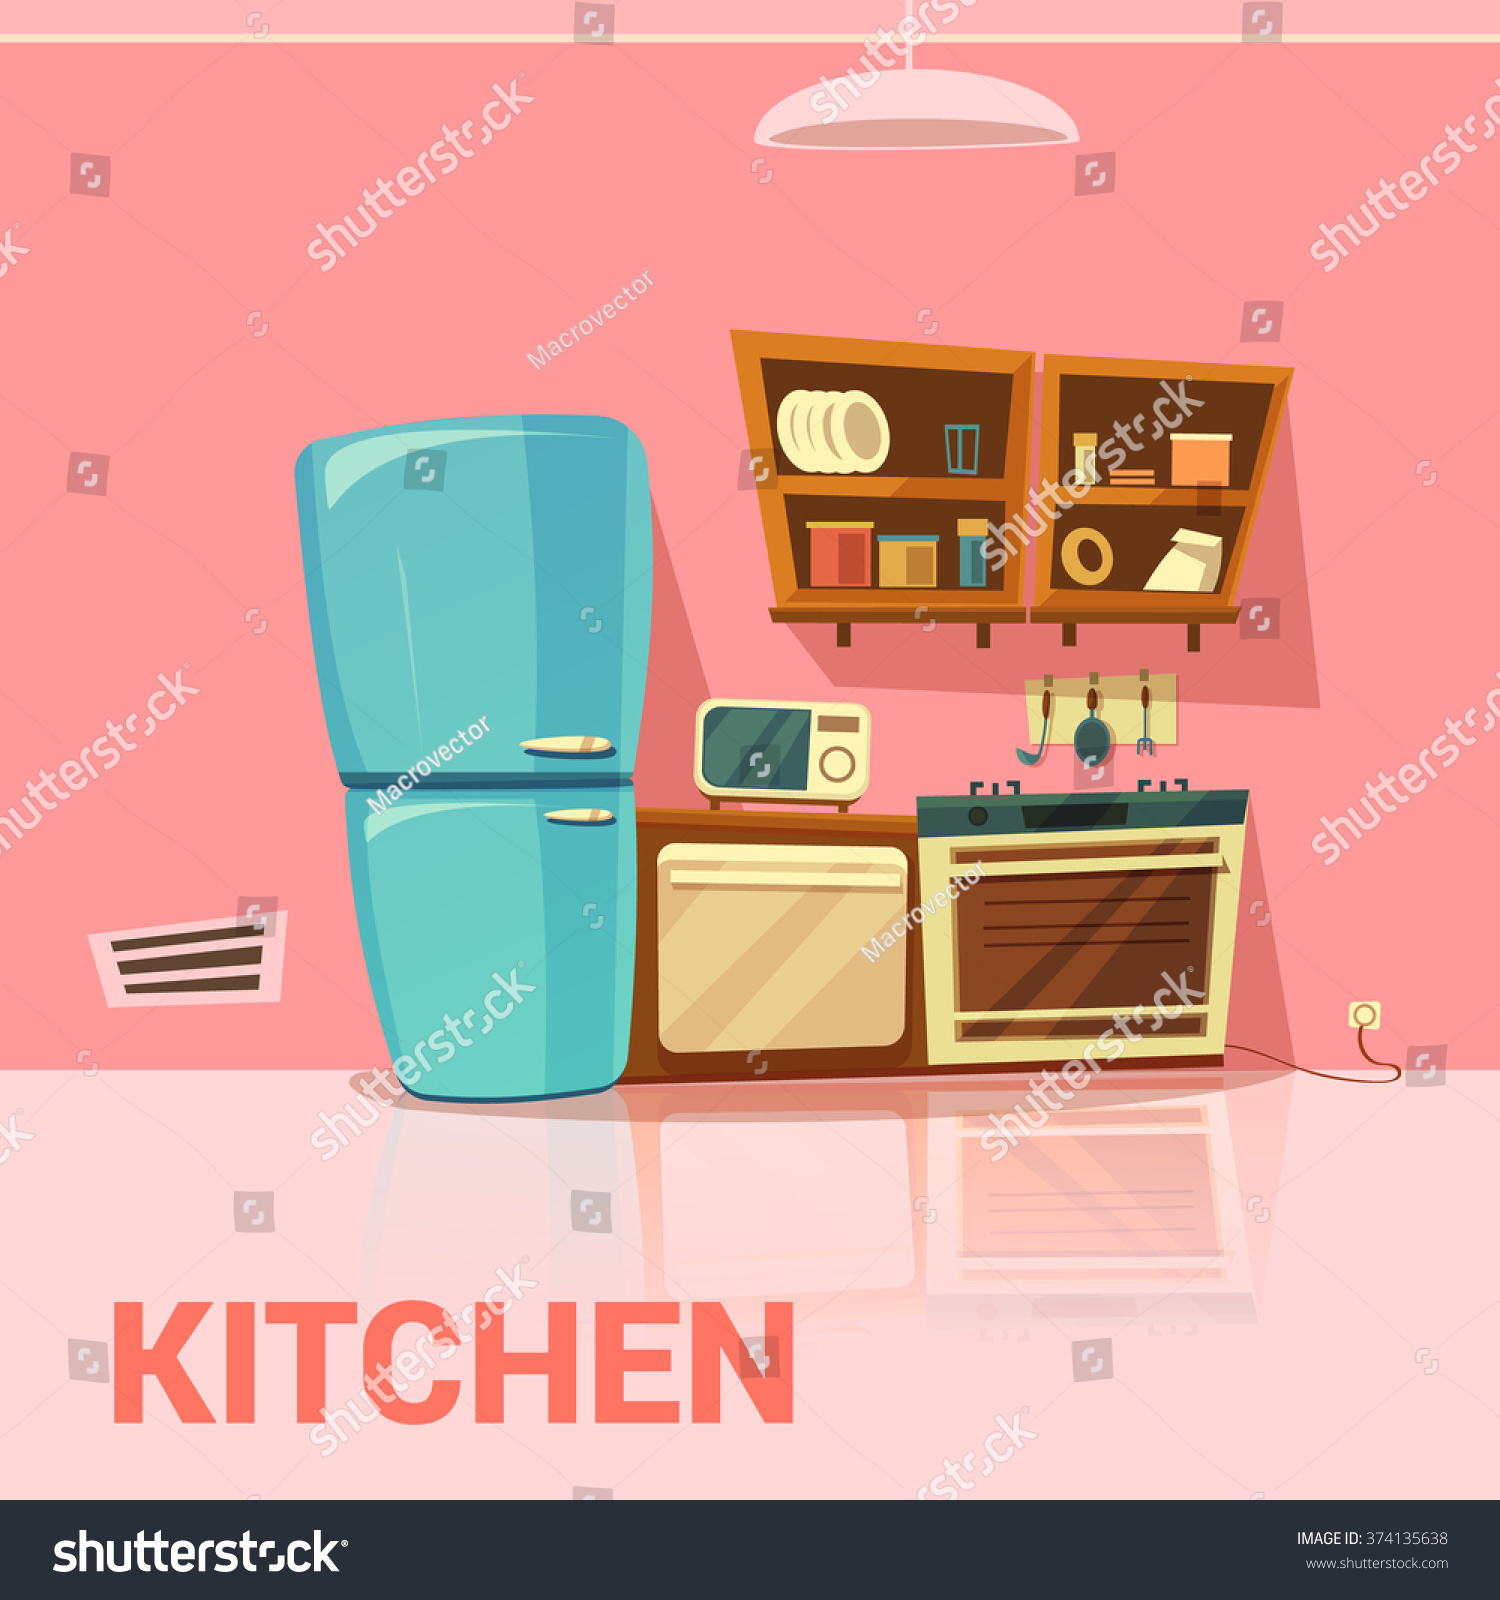 Cartoon kitchen with cabinets and window vector art illustration - Kitchen Retro Design With Fridge Microwave Oven And Cooker Cartoon Vector Illustration